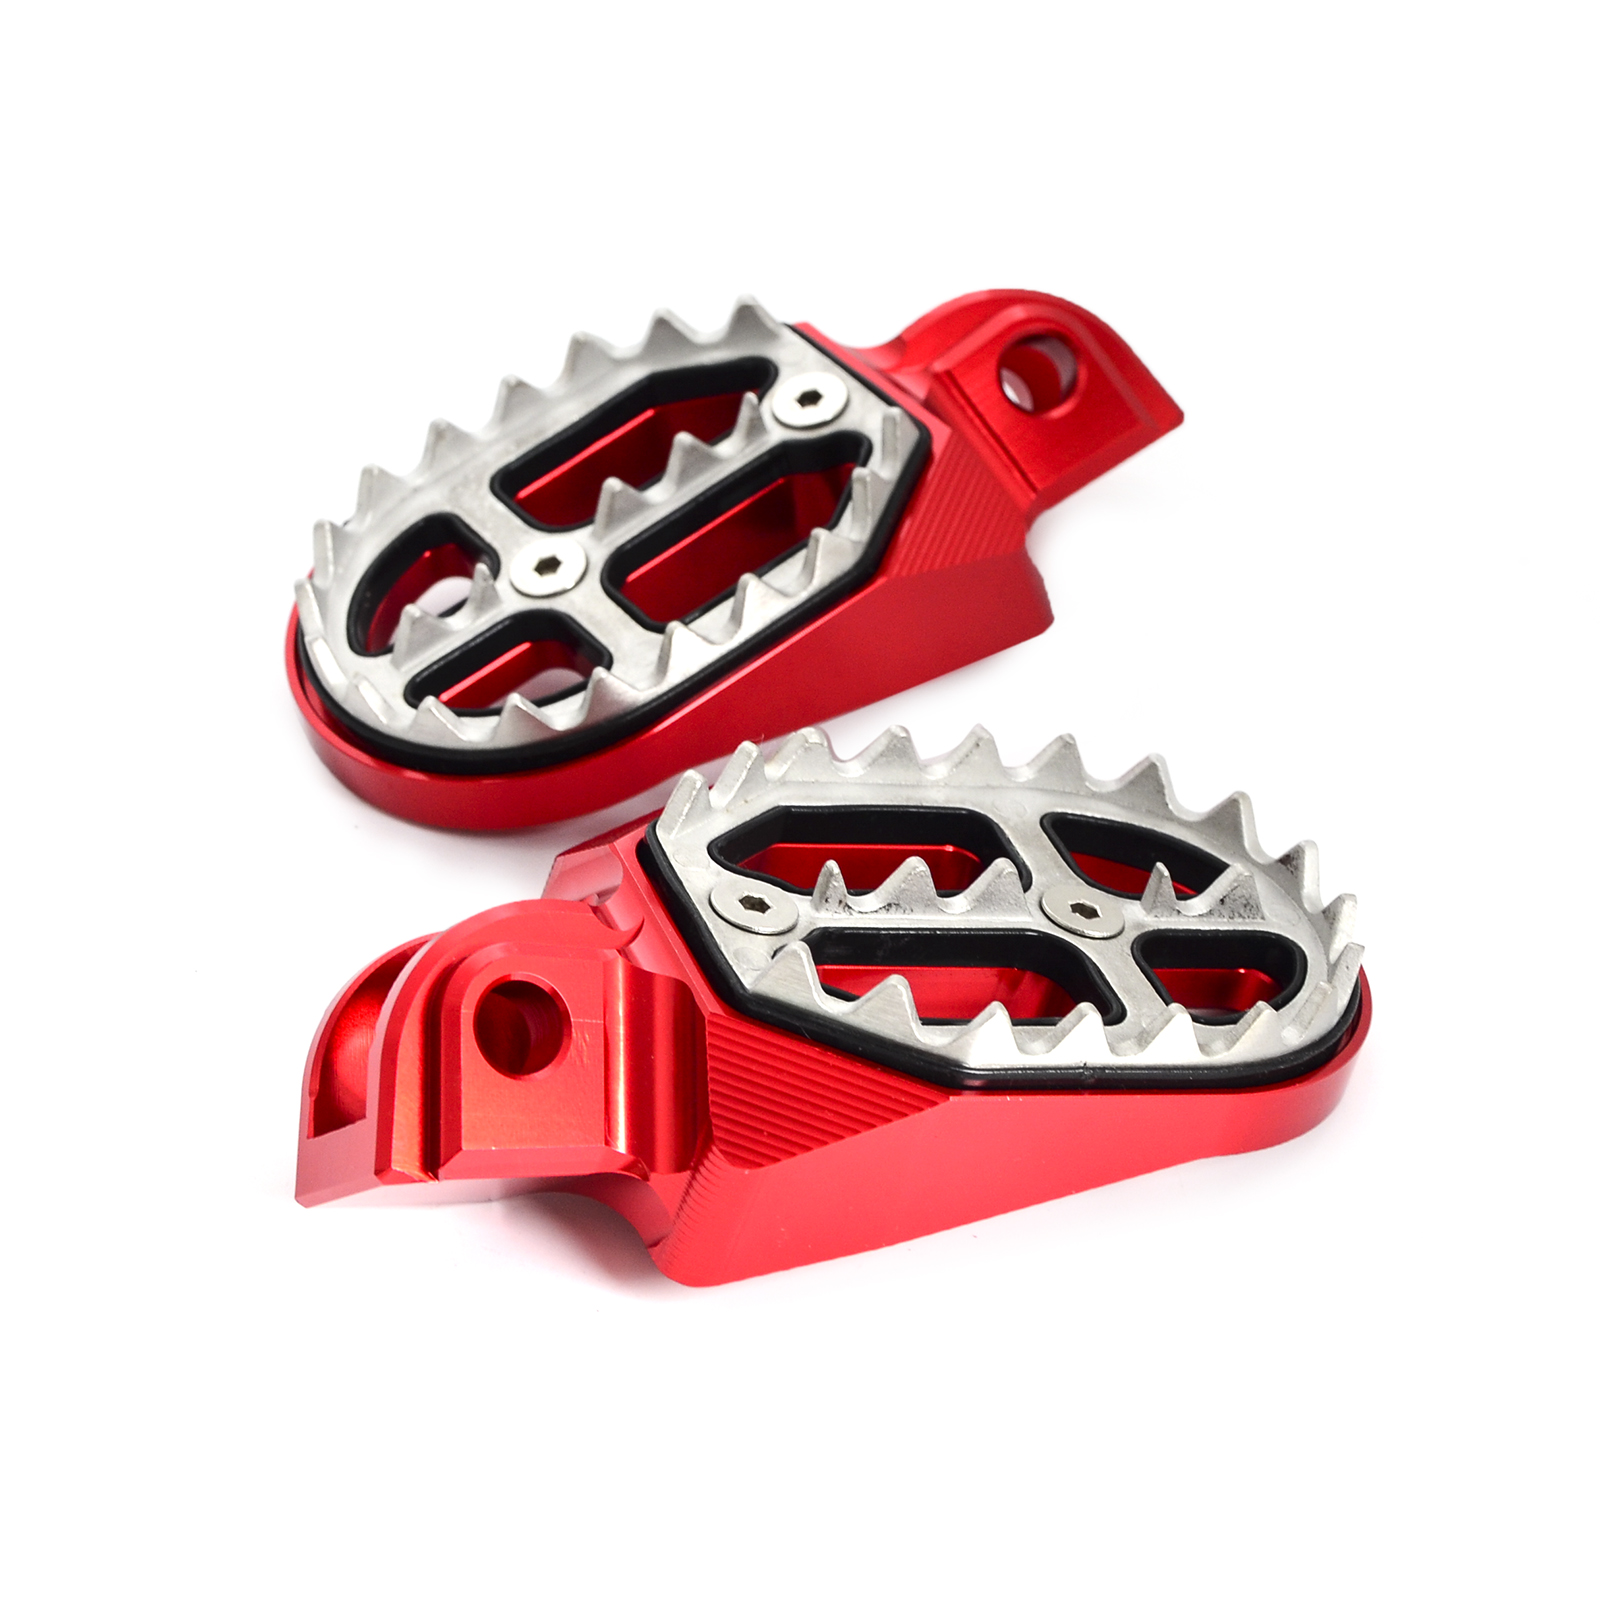 Billet MX Foot Pegs Rests Pedals For <font><b>Beta</b></font> 125RR 250RR <font><b>300RR</b></font> 350RR 390RR 450RR 480RR 498RR 520RR 525RR 2T 4T XTrainer 250 300 image